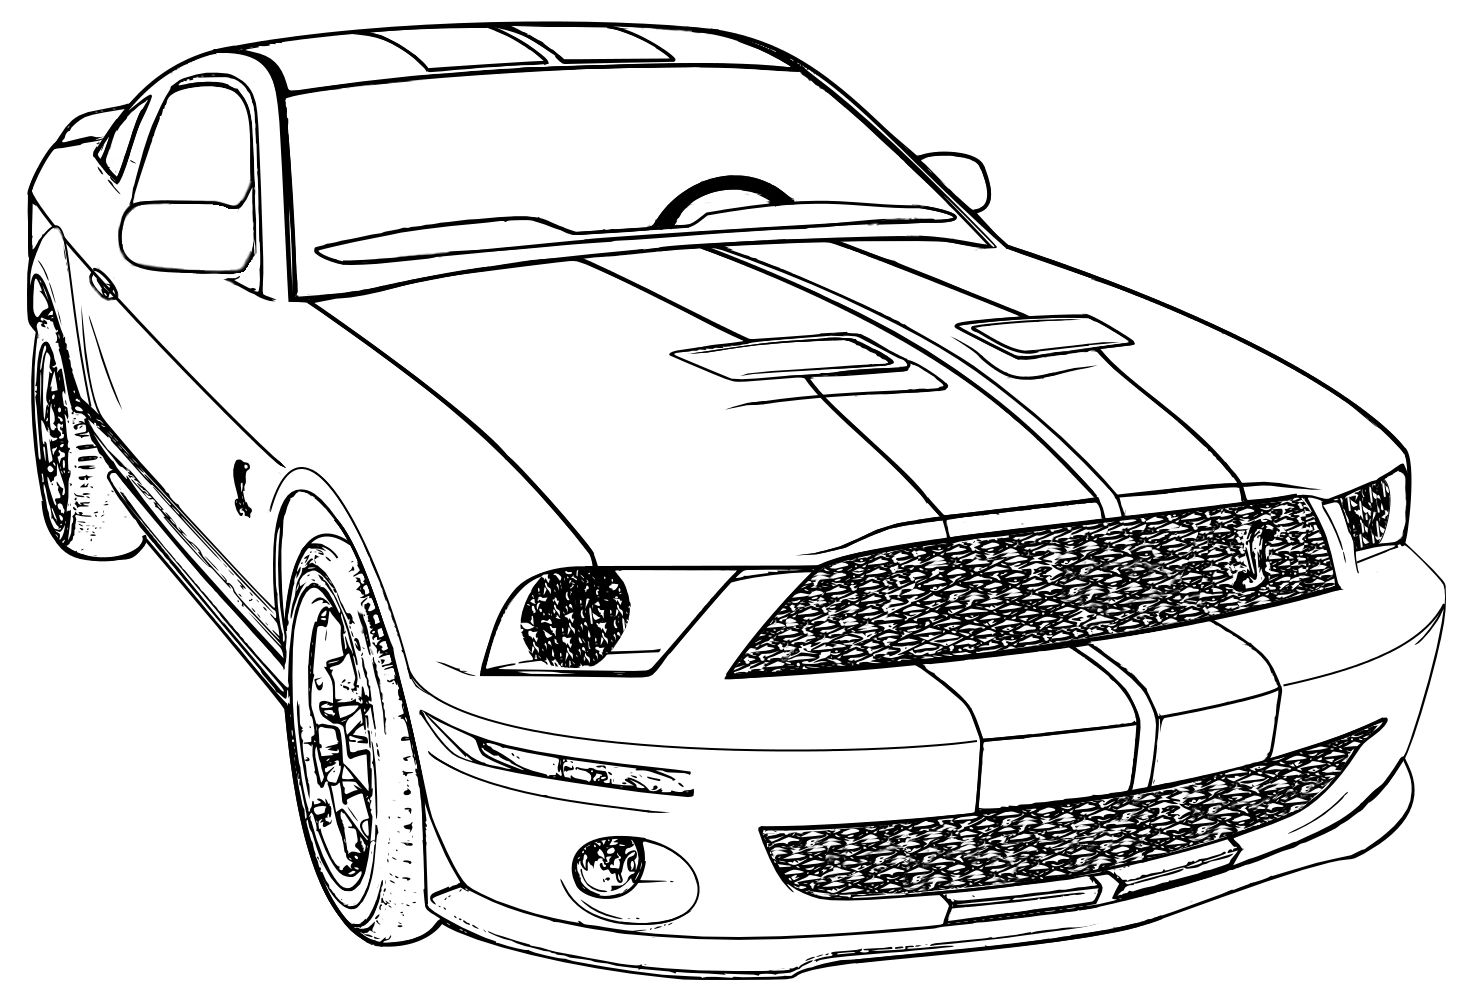 Ford Coloring Pages Download Cars Coloring Pages Coloring For Kids Coloring Pages